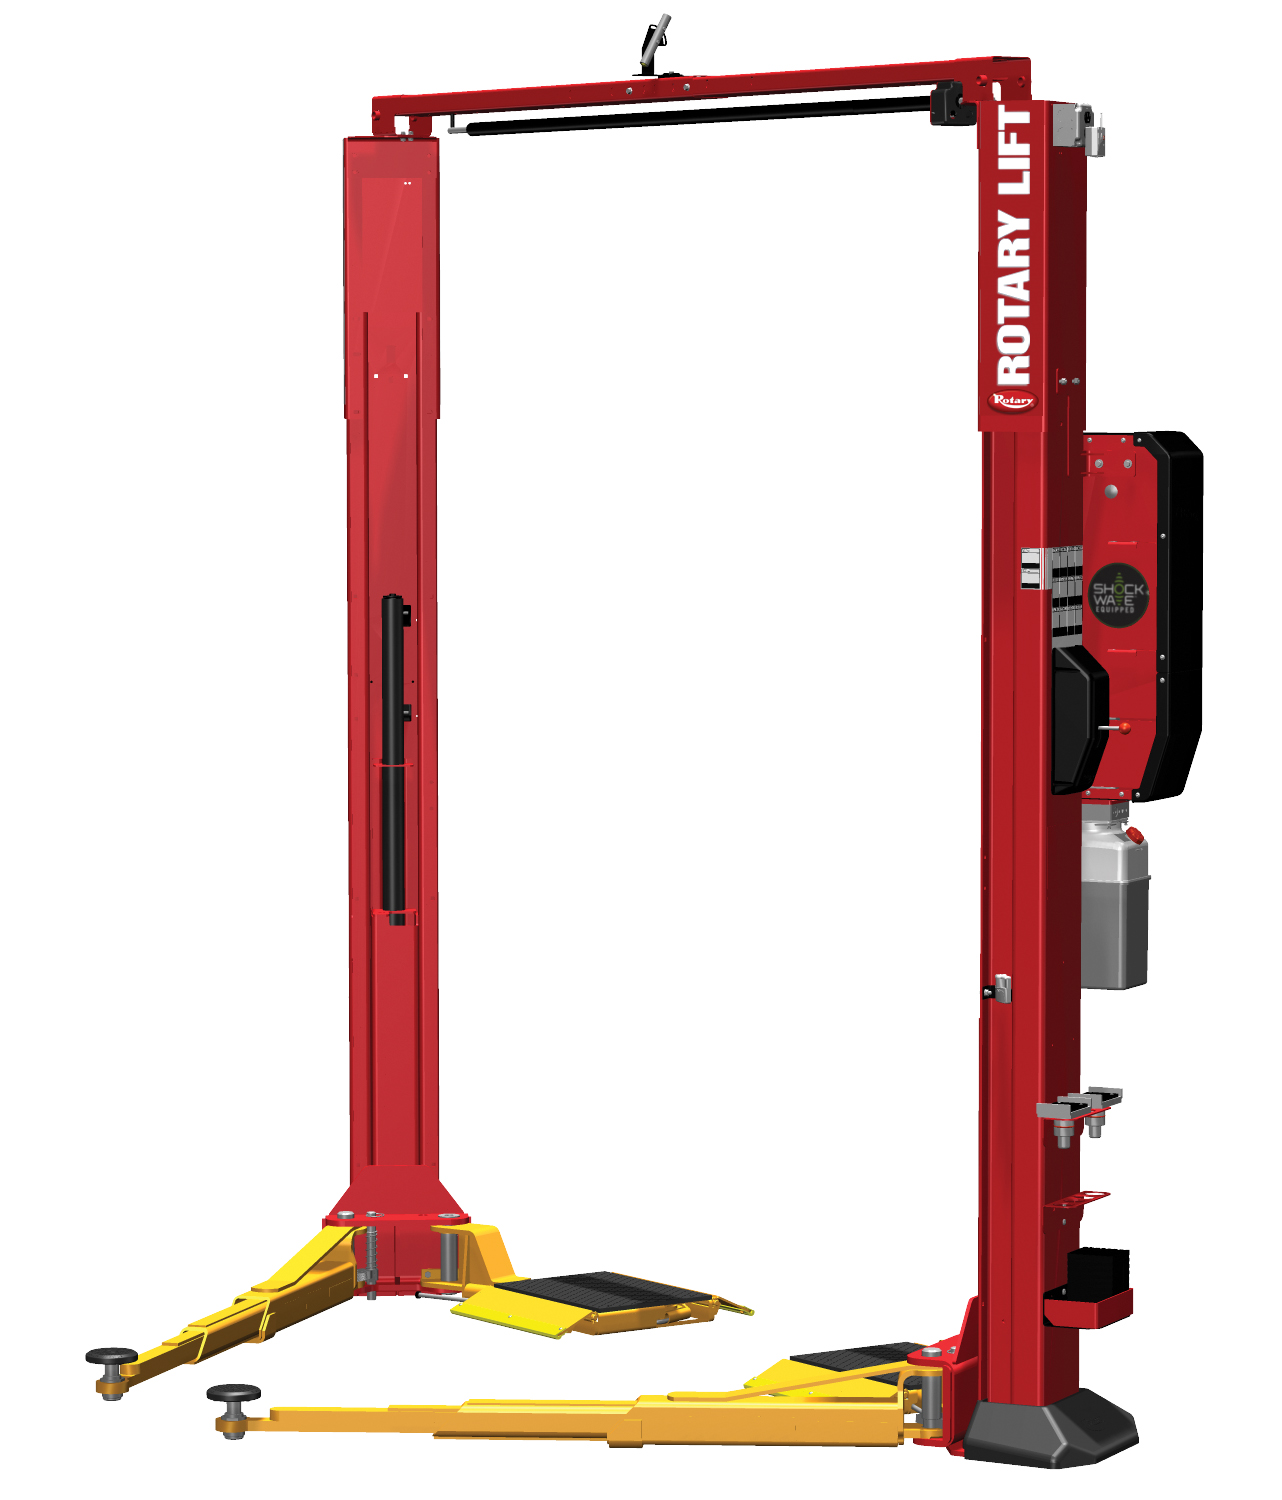 Rotary Shockwave A10 fully inspected lift